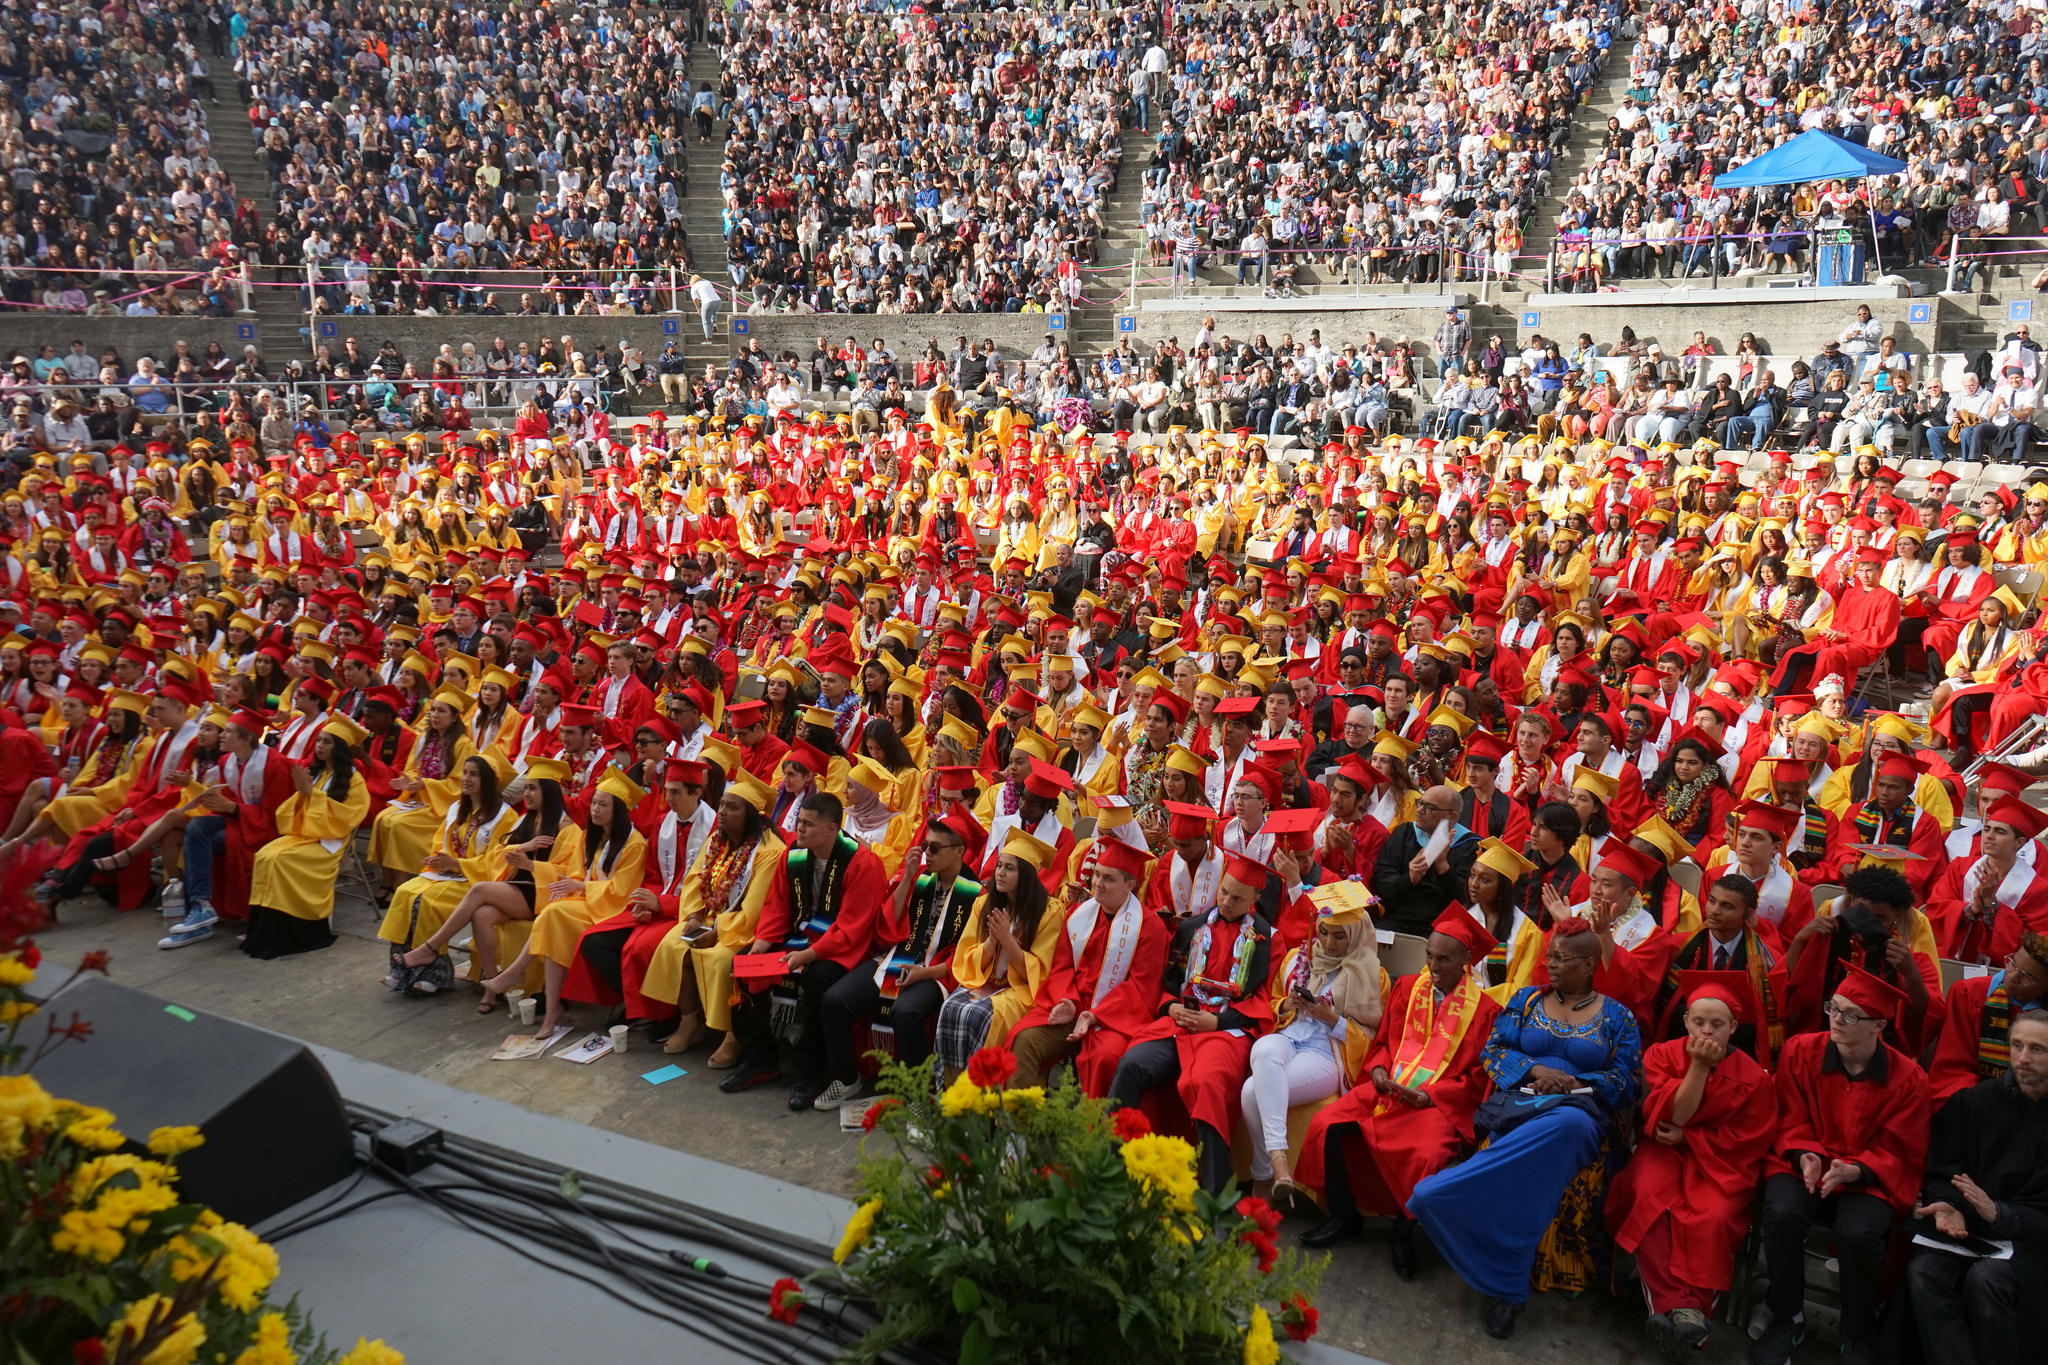 Berkeley High School graduation. Berkeley High Class of 2018